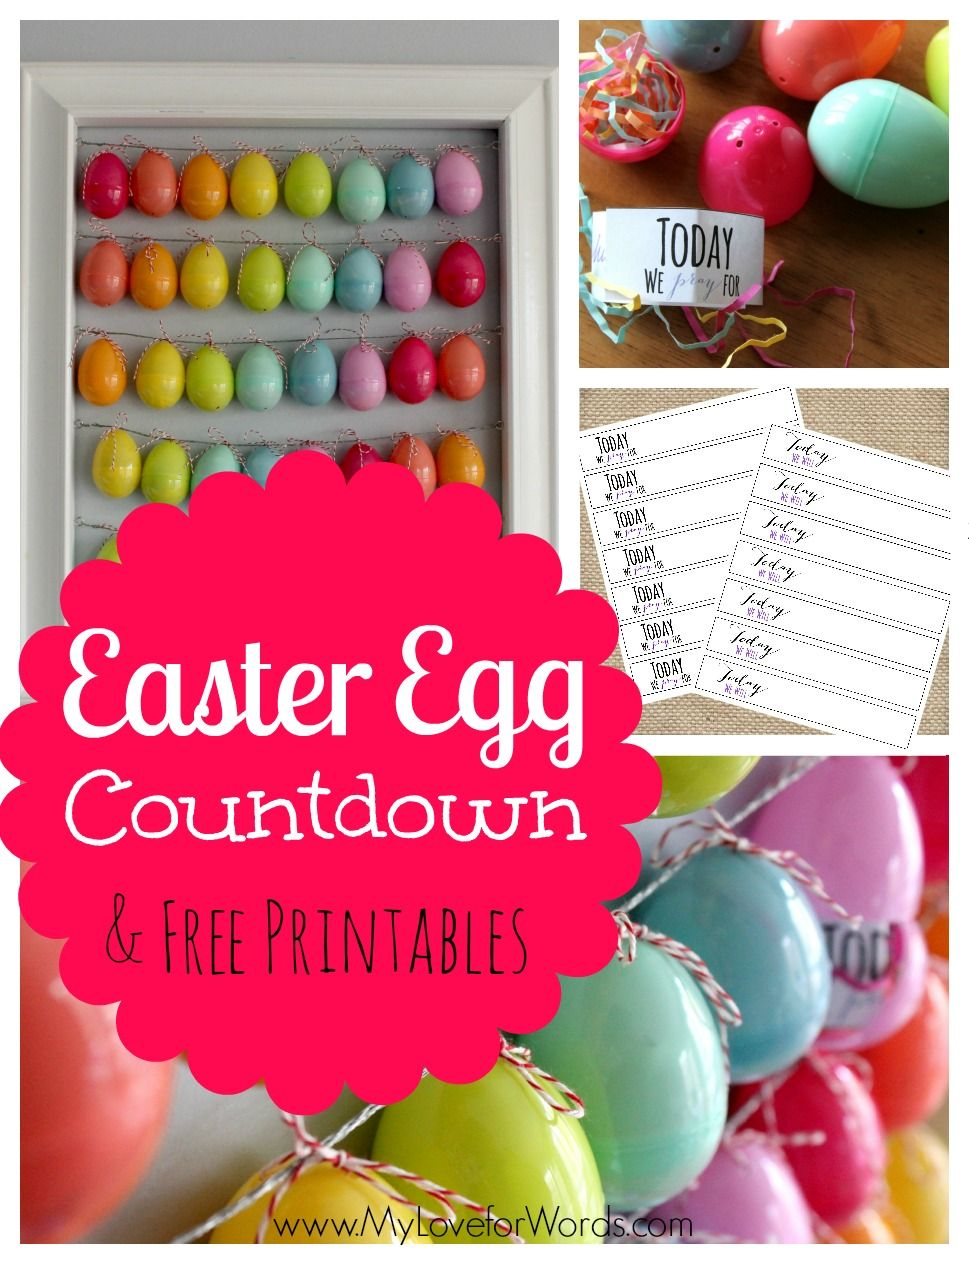 Easter Egg Countdown Free Printables With Images Plastic Easter Egg Crafts Diy Projects Easter Easter Diy